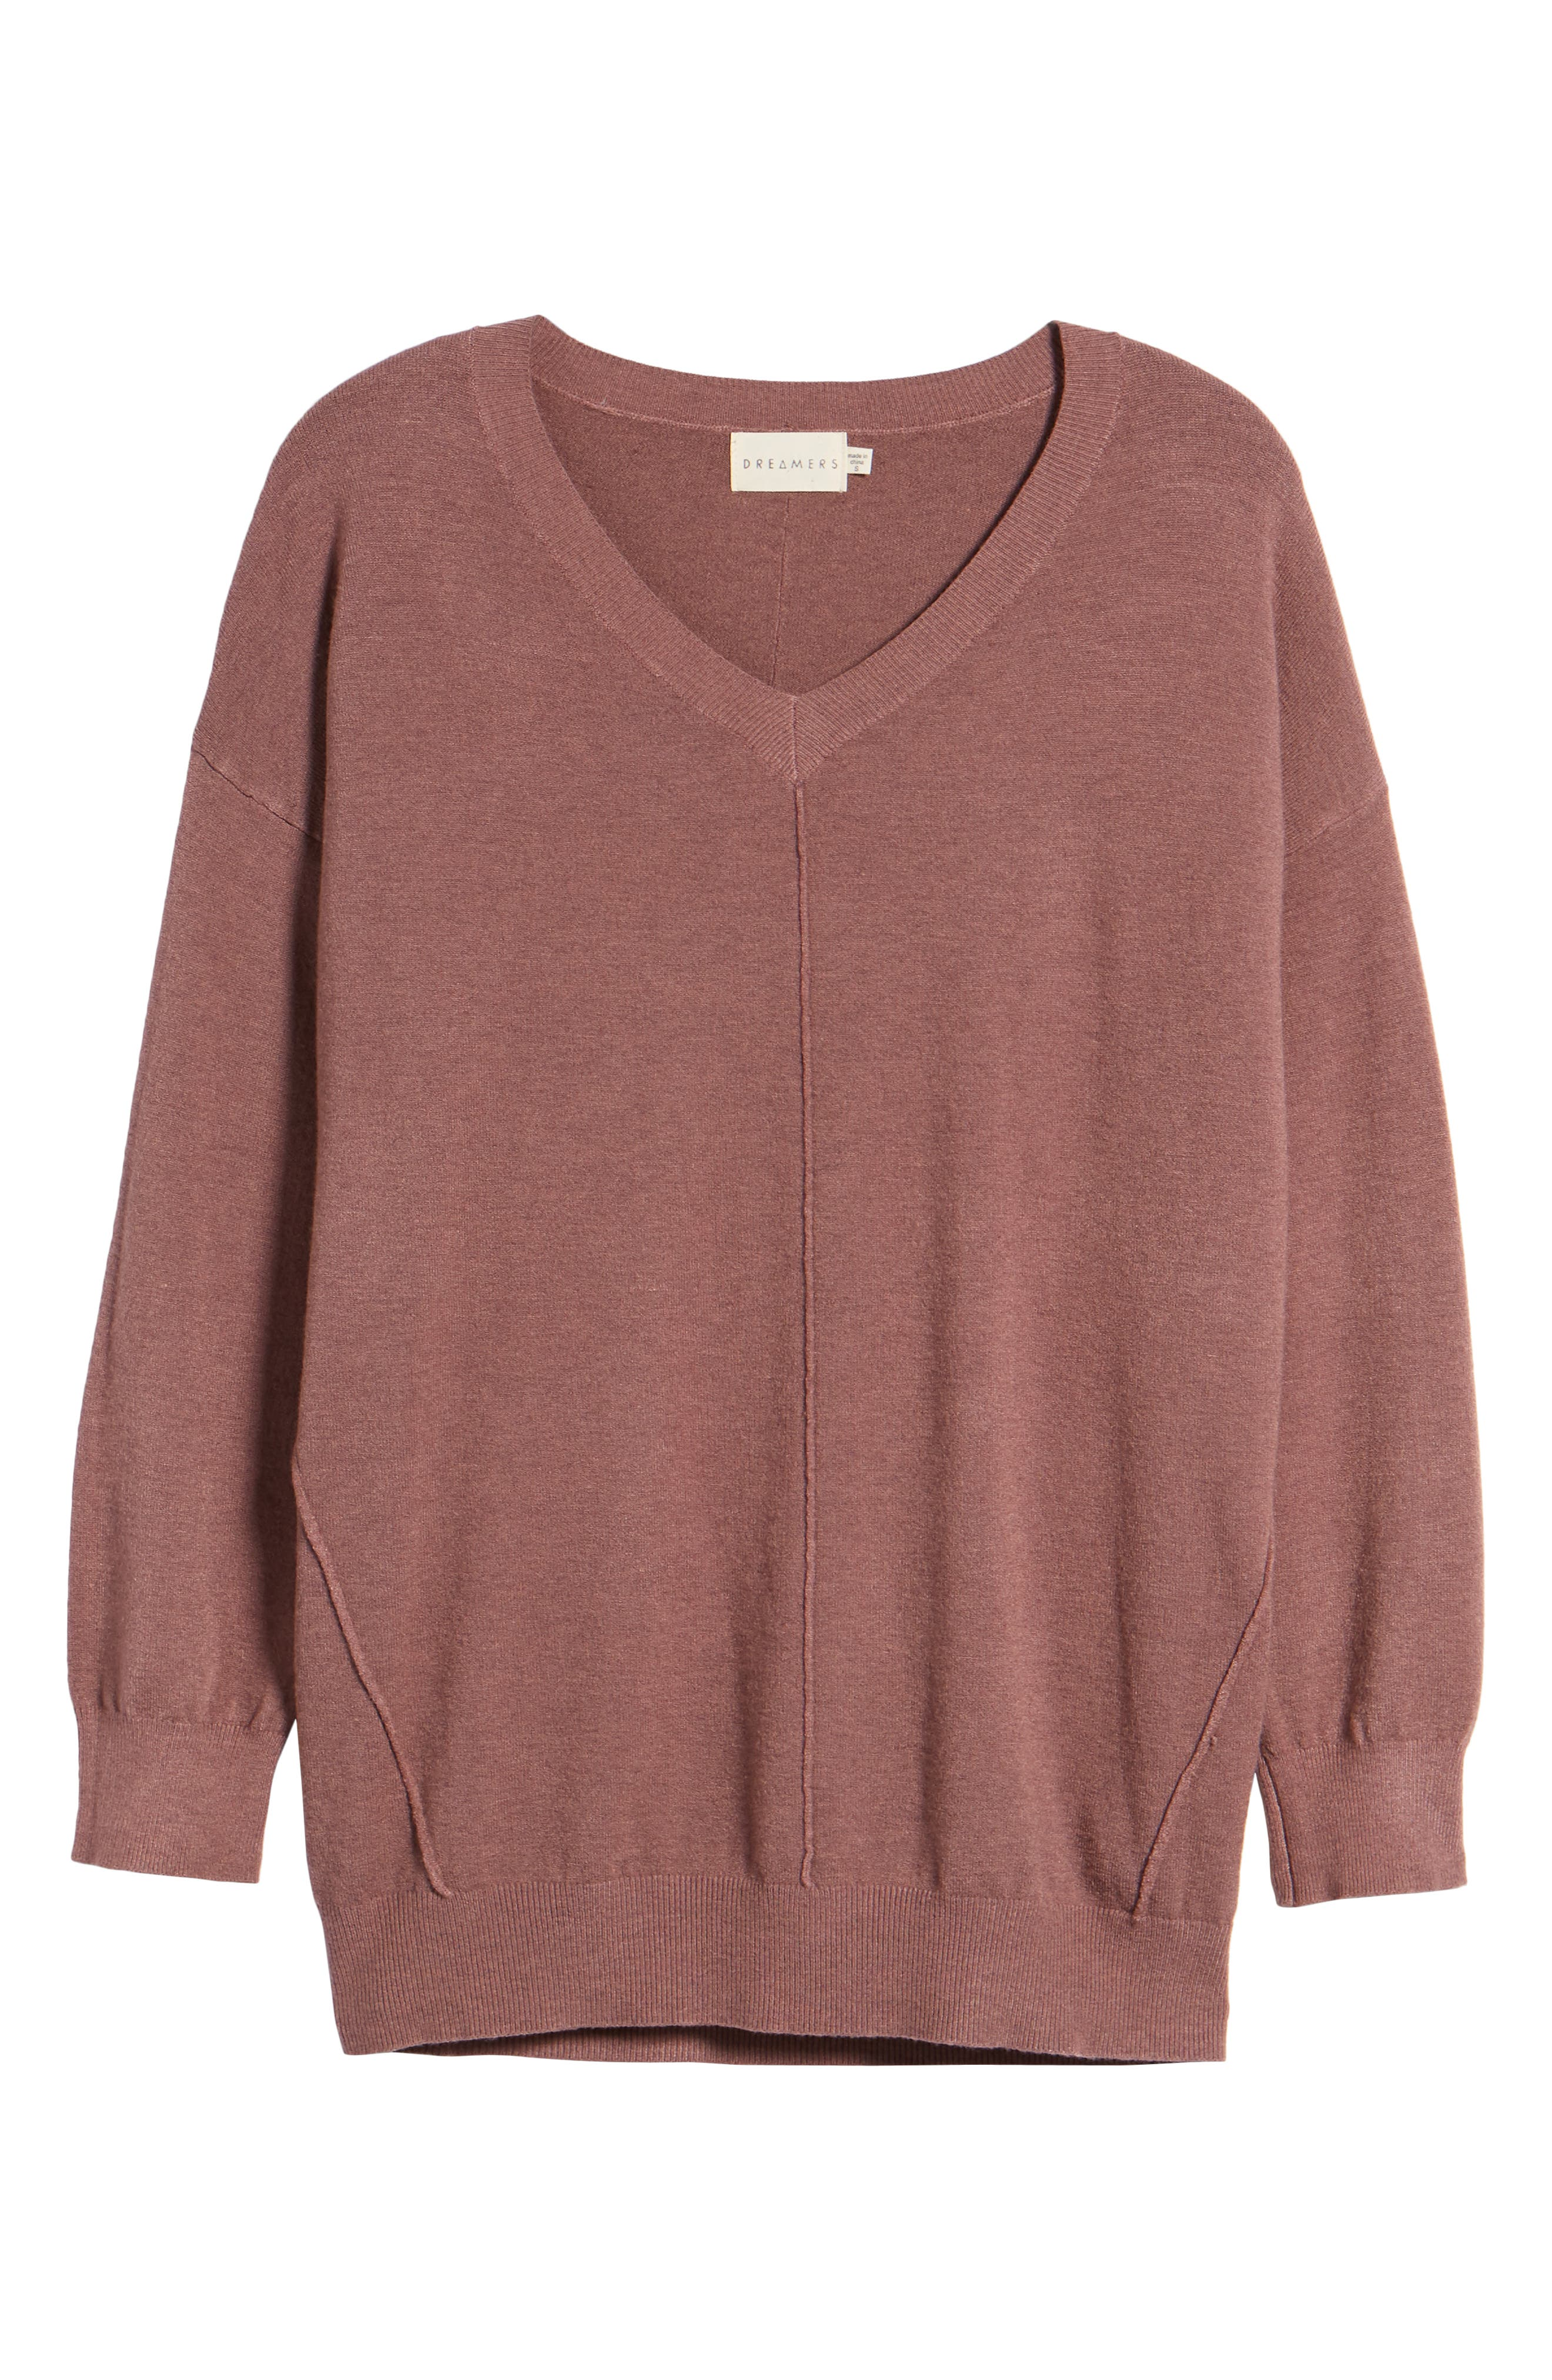 Exposed Seam Sweater,                             Alternate thumbnail 31, color,